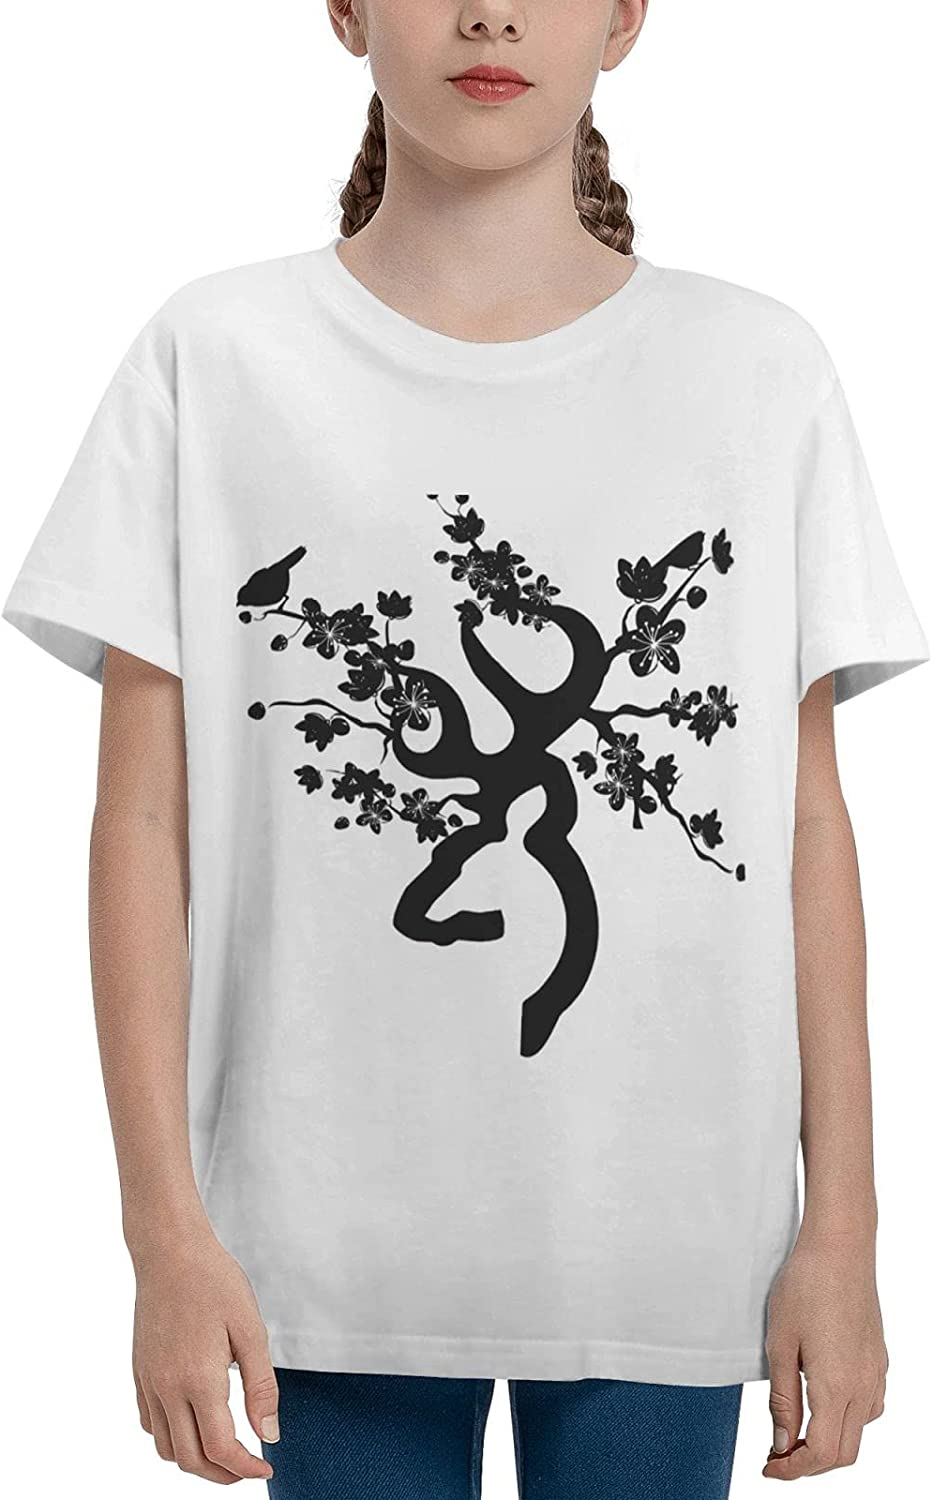 Kids T Shirt Browning Deer Youth T-Shirt Short Sleeve Cotton Tee Shirts Tops for Boys and Girls